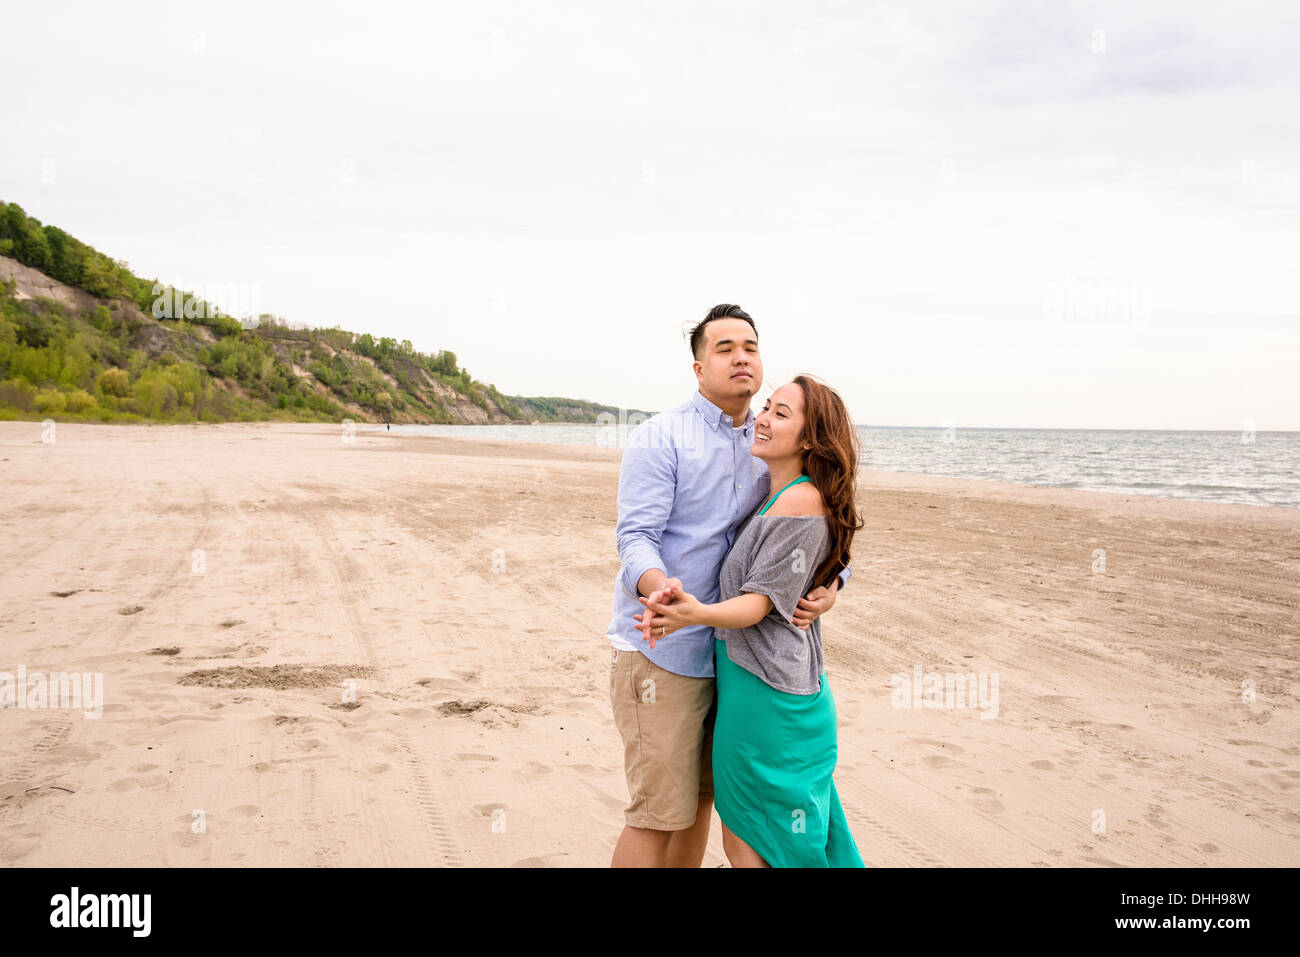 Young couple dancing on beach - Stock Image